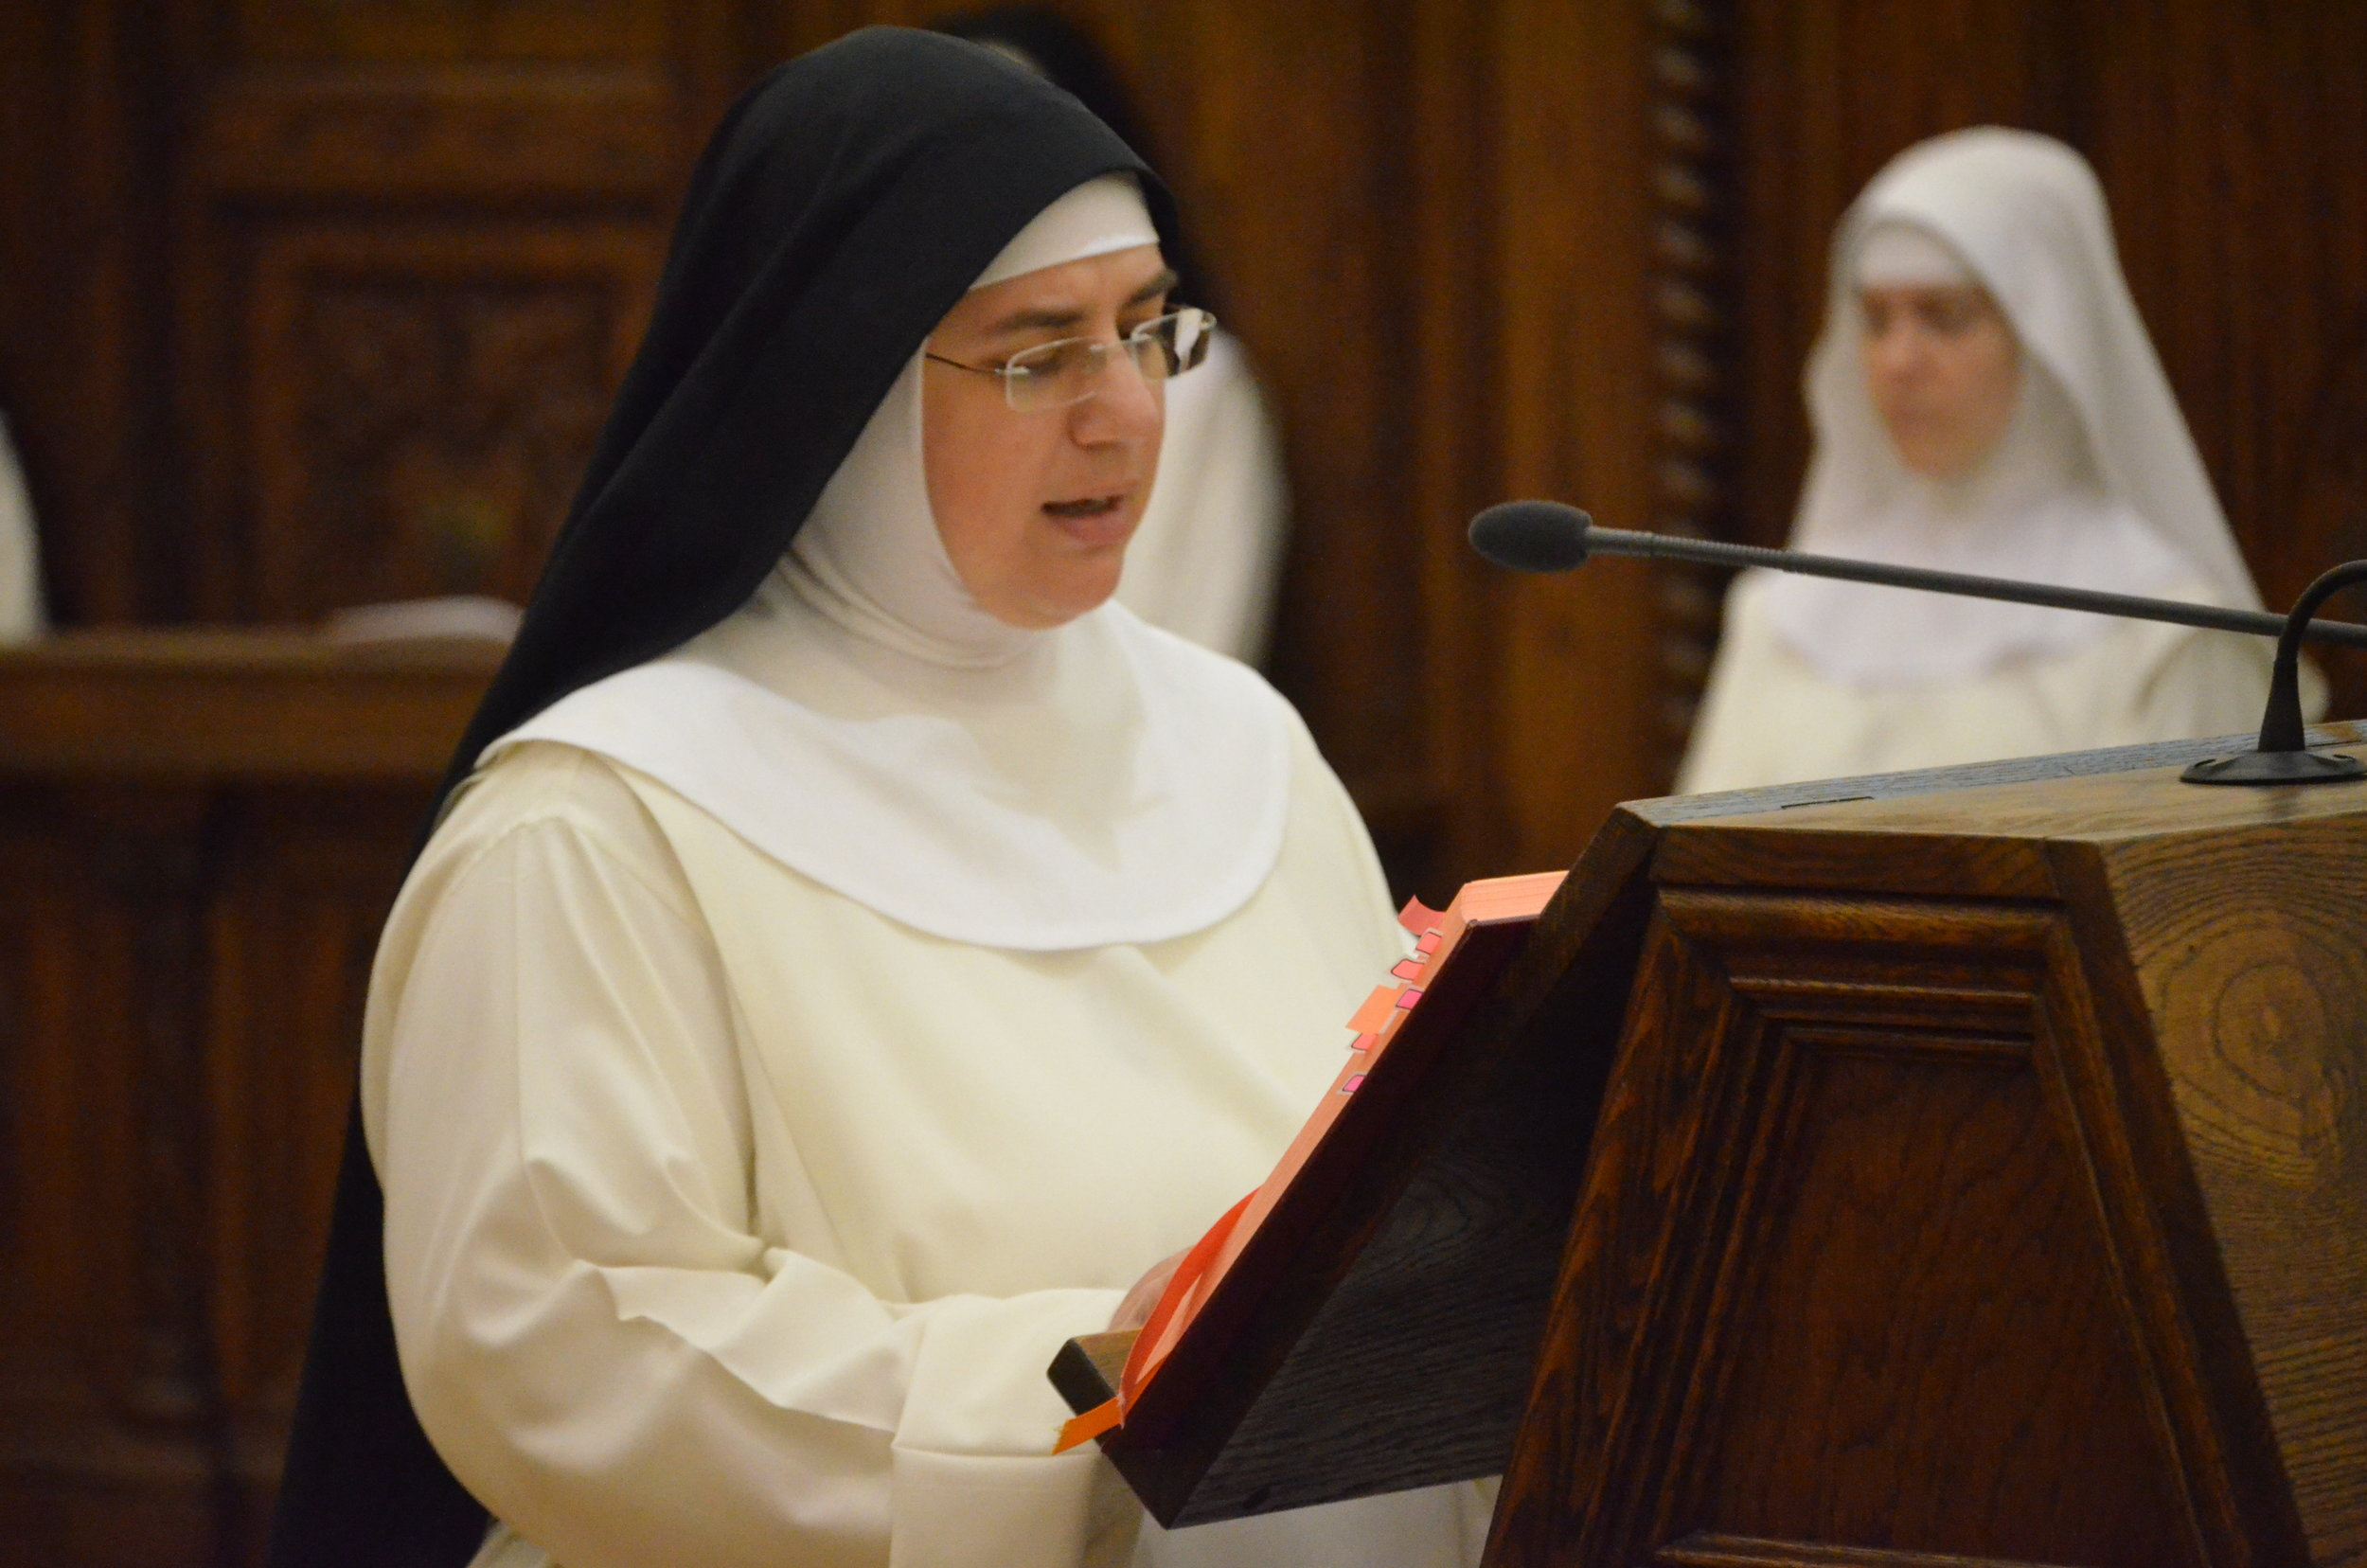 Sr. Mary Catharine chants the First Reading